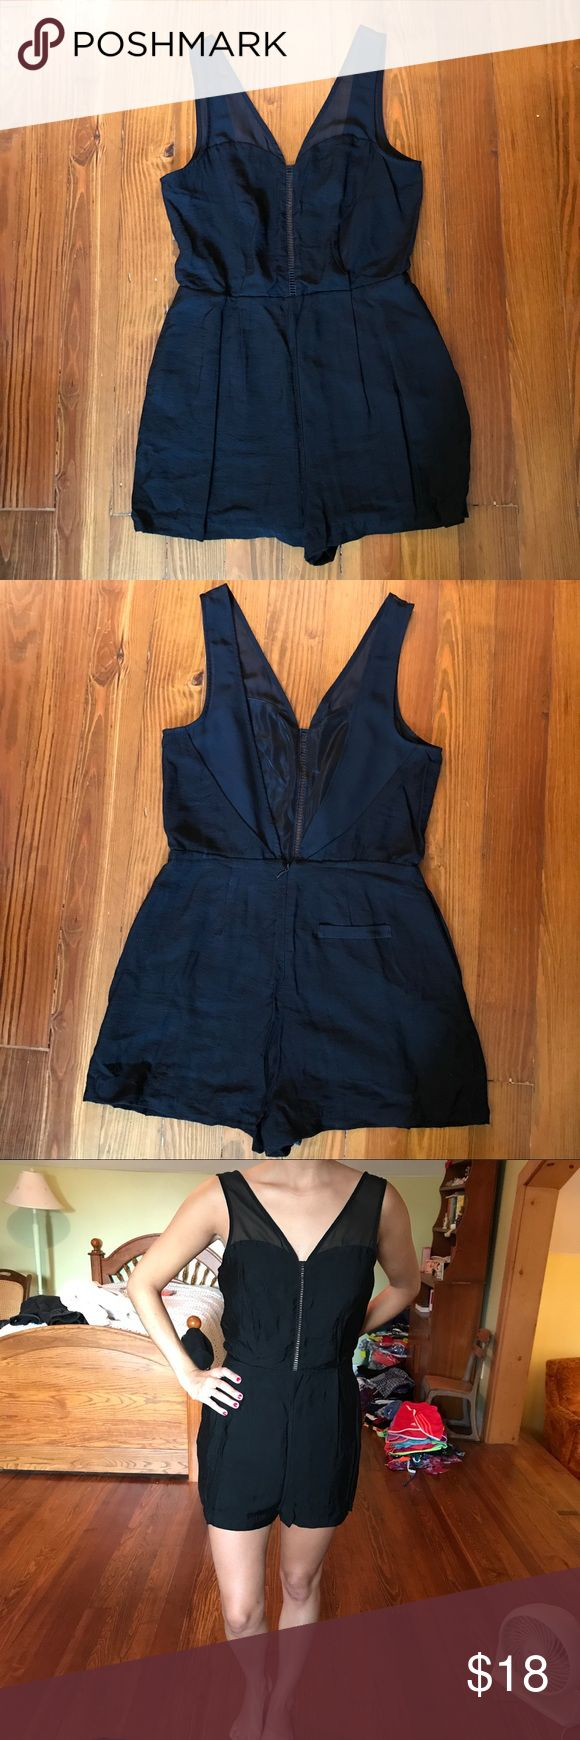 Black dressy BCBG romper NWOT. Perfect for many occasions, can be dressed up with heels or down with sandals. This sexy romper features a plunging V back line and straps that are mesh. Size 6. BCBGeneration Dresses